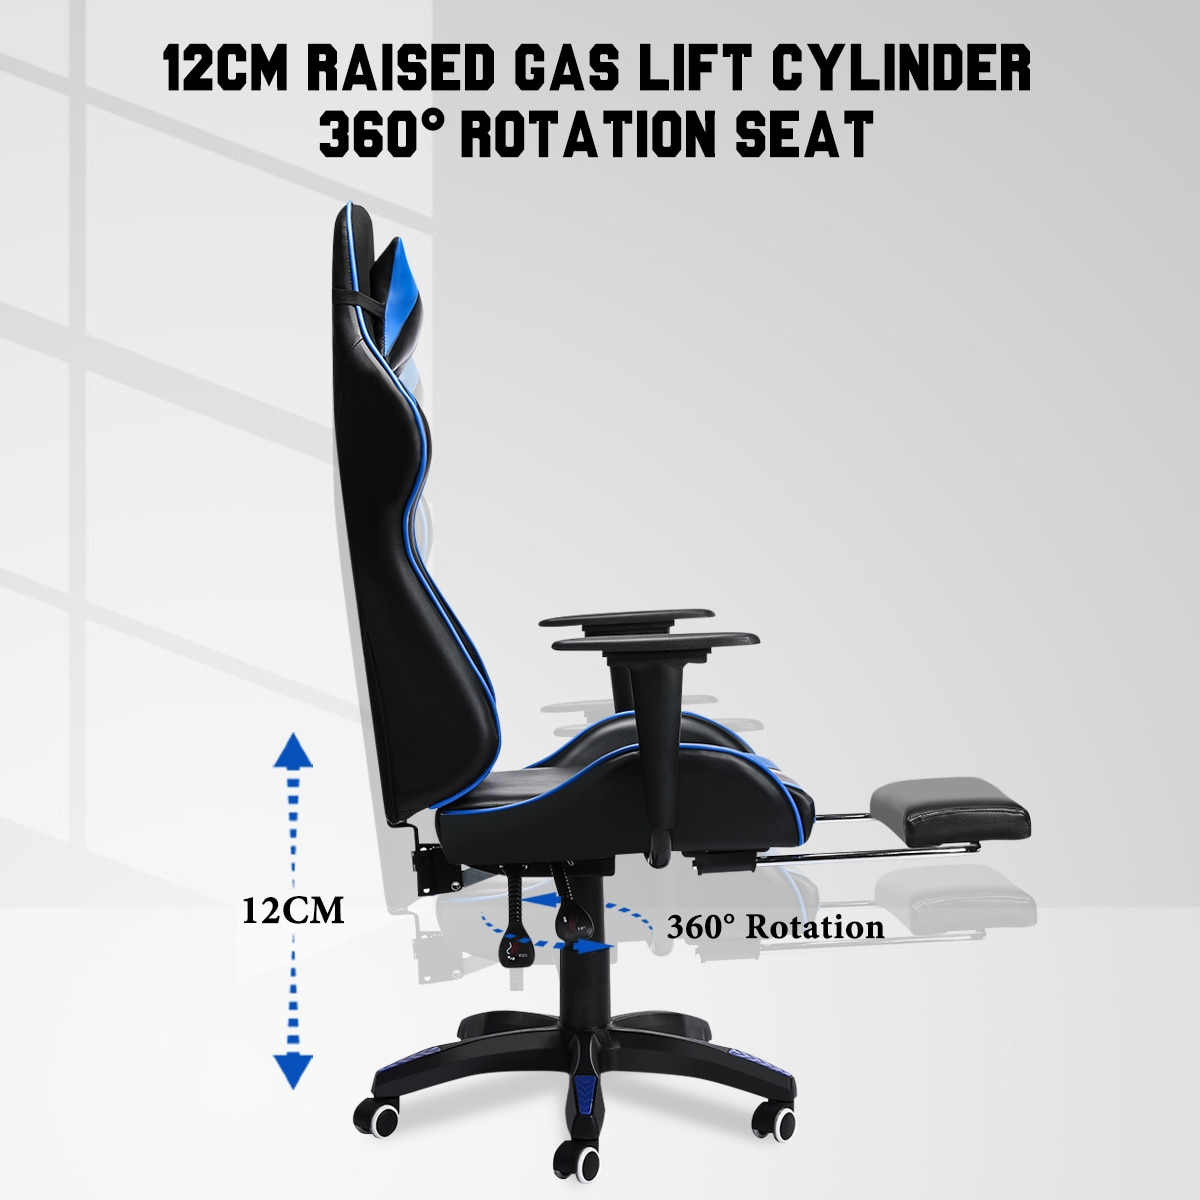 H3debd692980240068c533db3fe9fce10h - 155° Gaming Chairs with Footrest Ergonomic Office Chair Adjustable Swivel Leather High Back Computer Desk Chair with Headrest